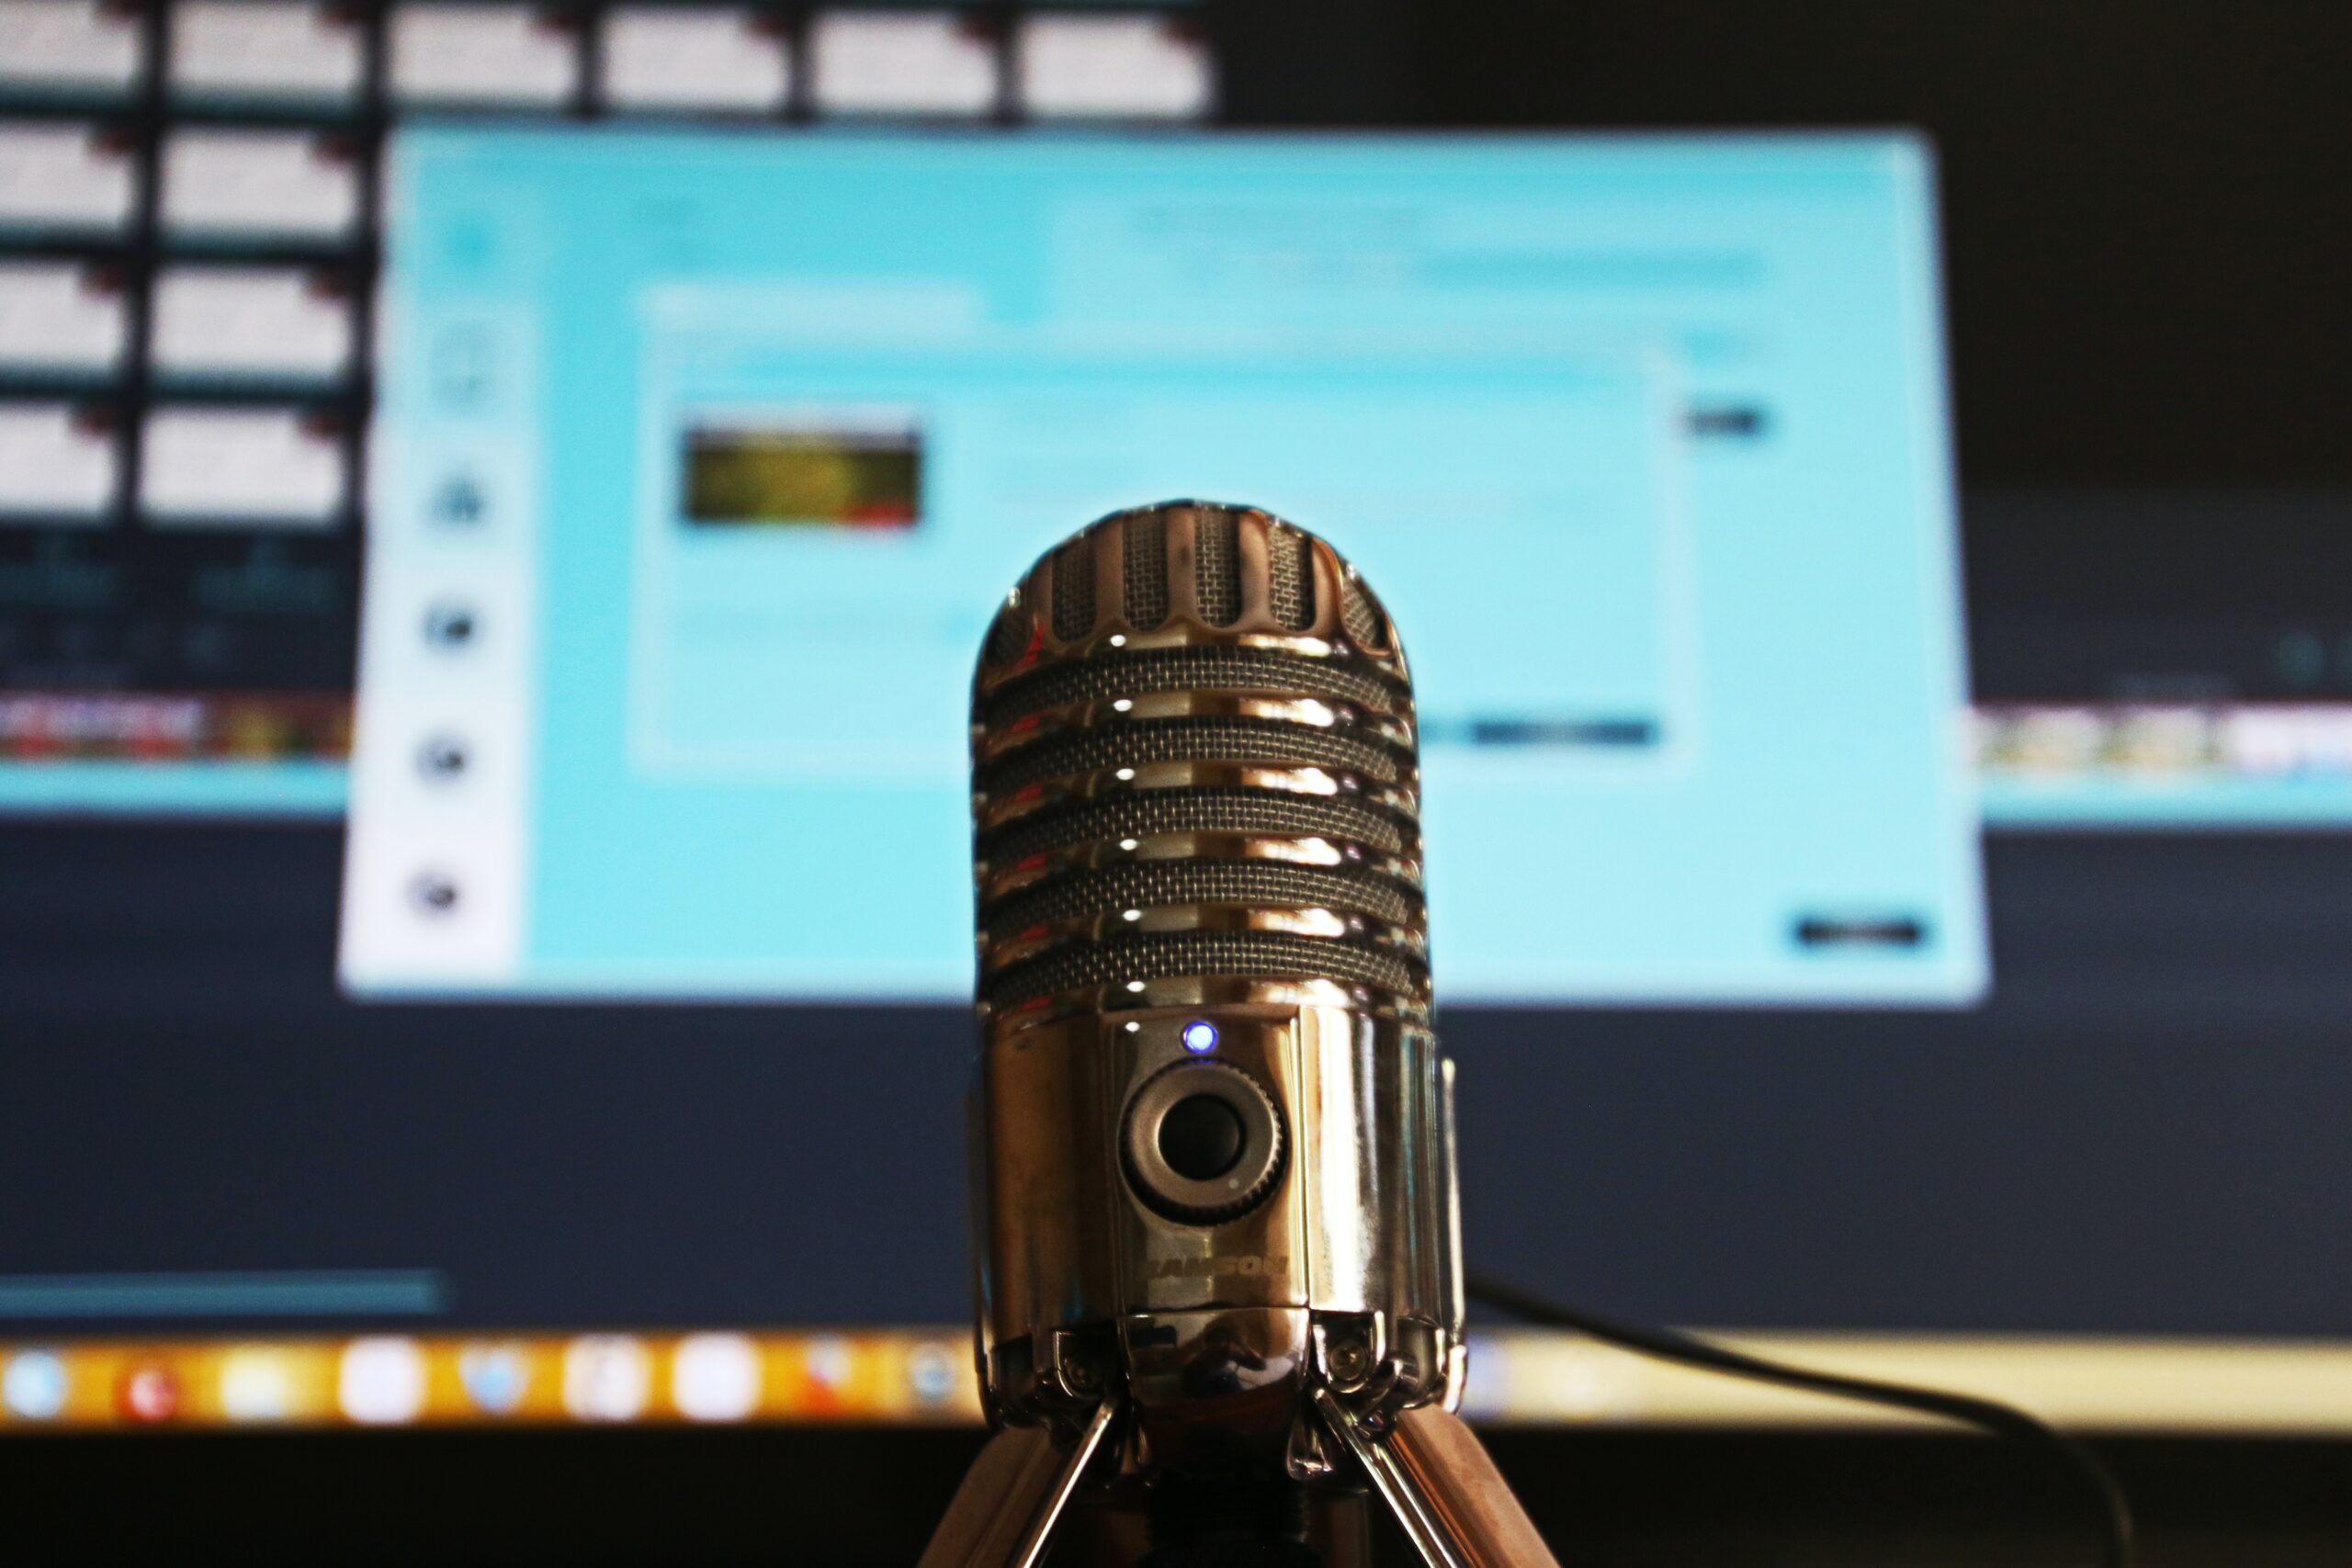 A photo of a microphone in front of a computer